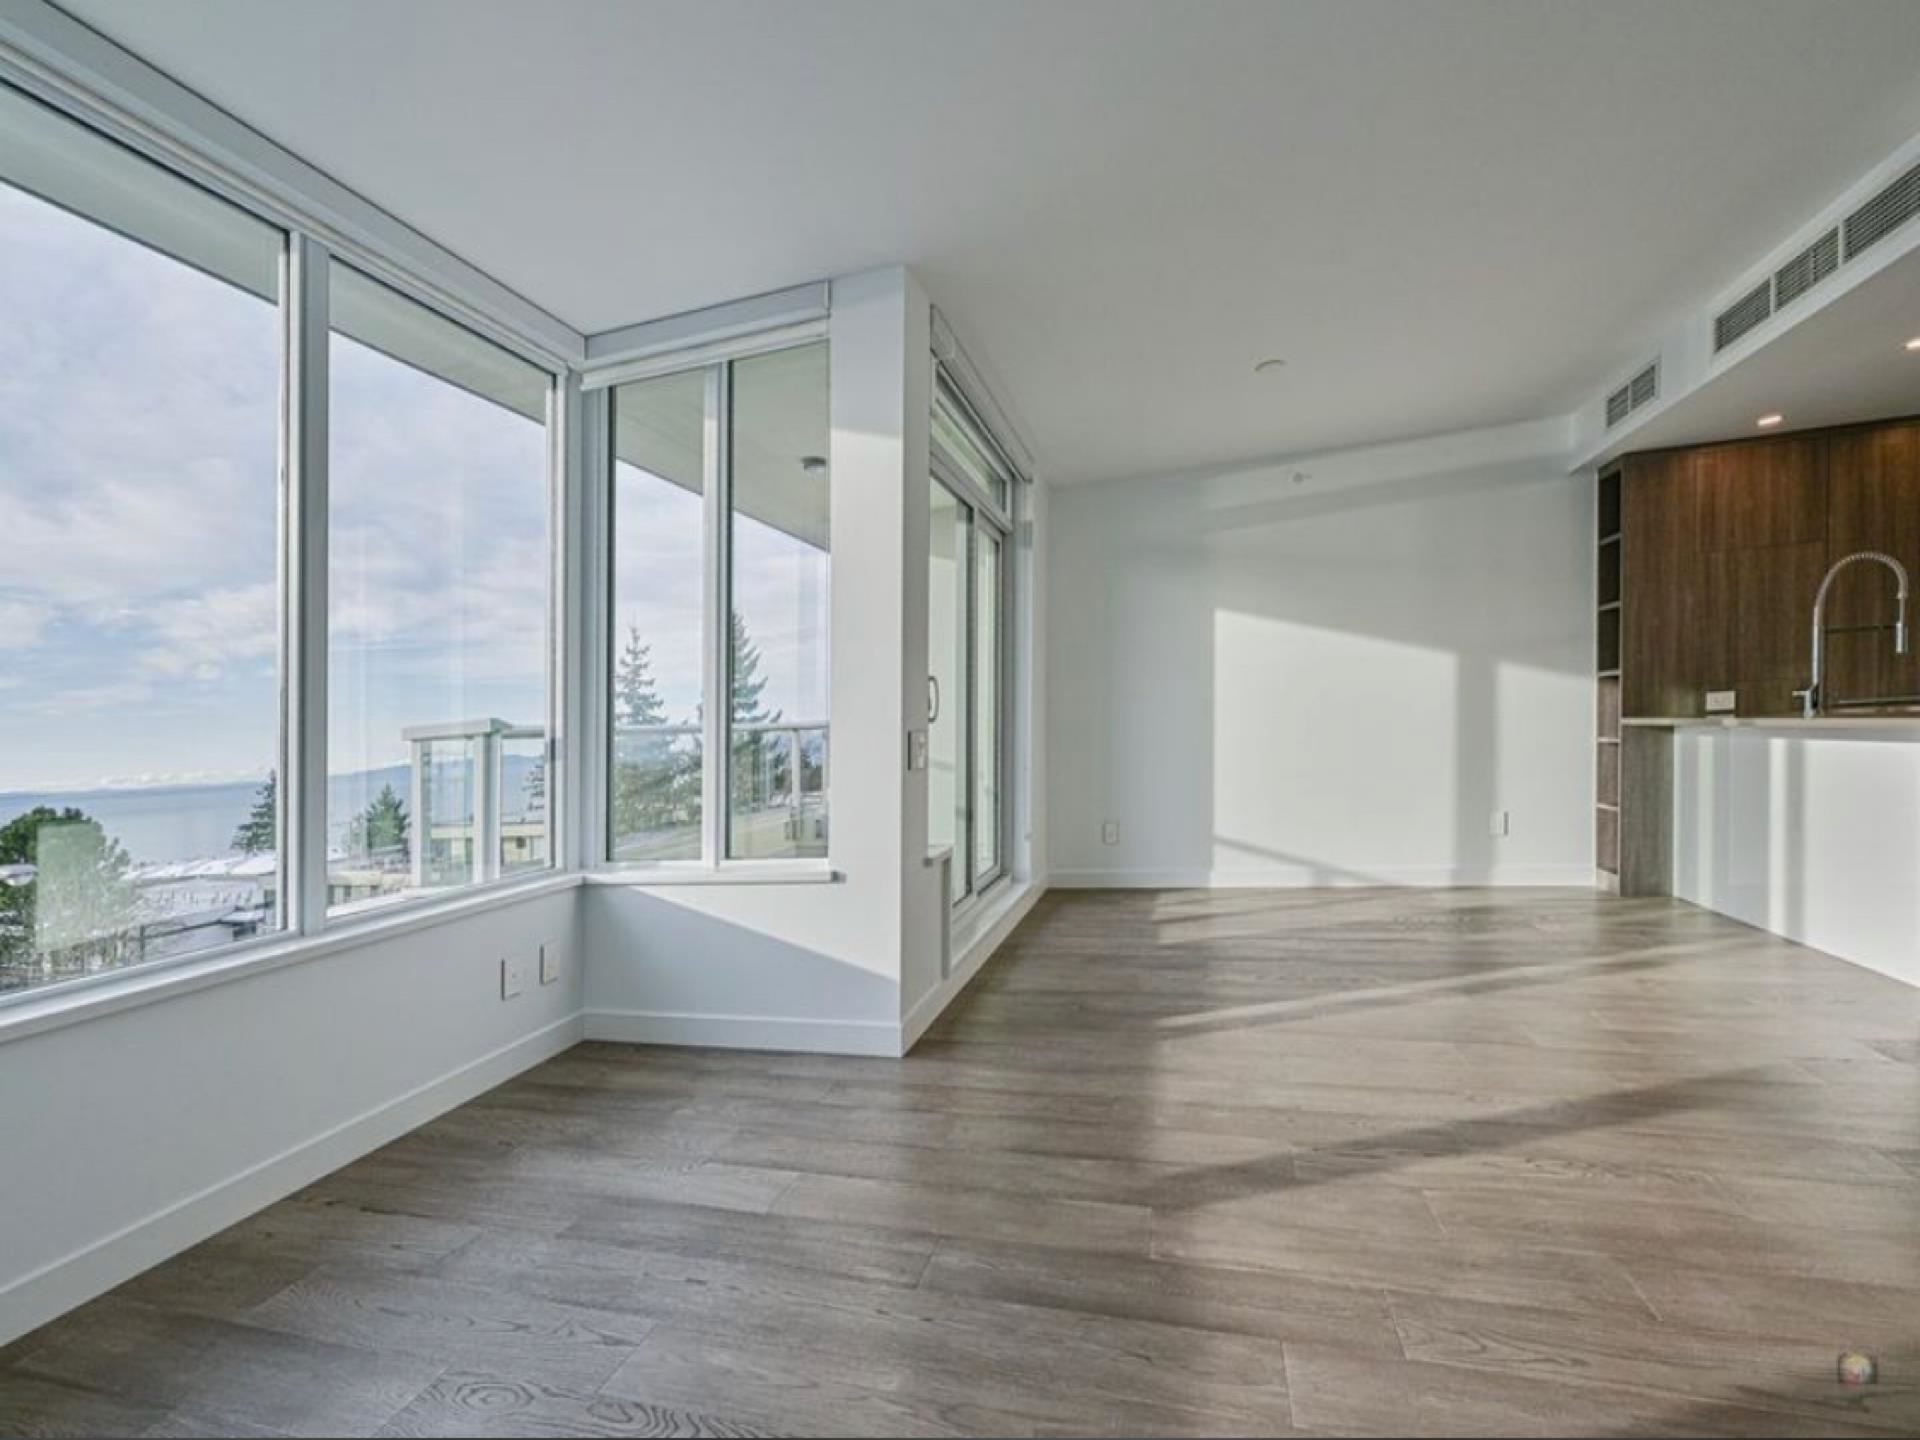 Unobstructed south facing ocean view concrete townhouse! Located on the slope of the Semiahmoo Peninsula looking down to the bay and short walking from the White Rock pier.Features NEST thermostat,air conditioning, HRV, imported Italian kitchens with porcelain Calacatta slab backsplashes and Bosch home appliances. Amenities include a 15,000 sqft rooftop terrace, outdoor pool & indoor Health Club. Two Parking stalls and one locker. Nearby schools are Semiahmoo Secondary and SouthRidge School( ranked top 5 in BC schools continuously).